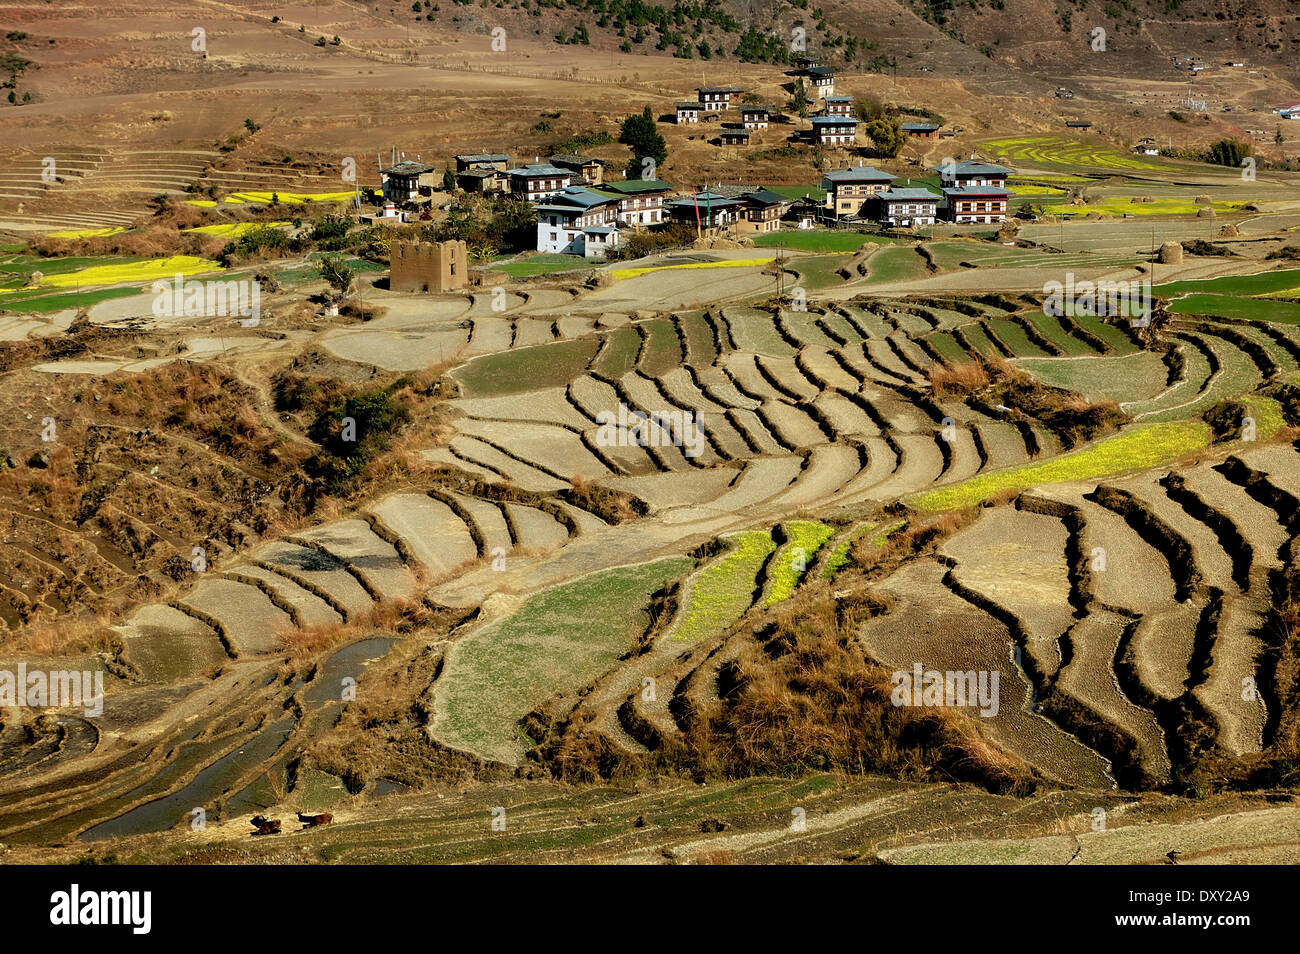 Views of terraced fields in Bhutan. Digitally Manipulated Image. Stylised by enhancing color, sharpening and adding texture. - Stock Image